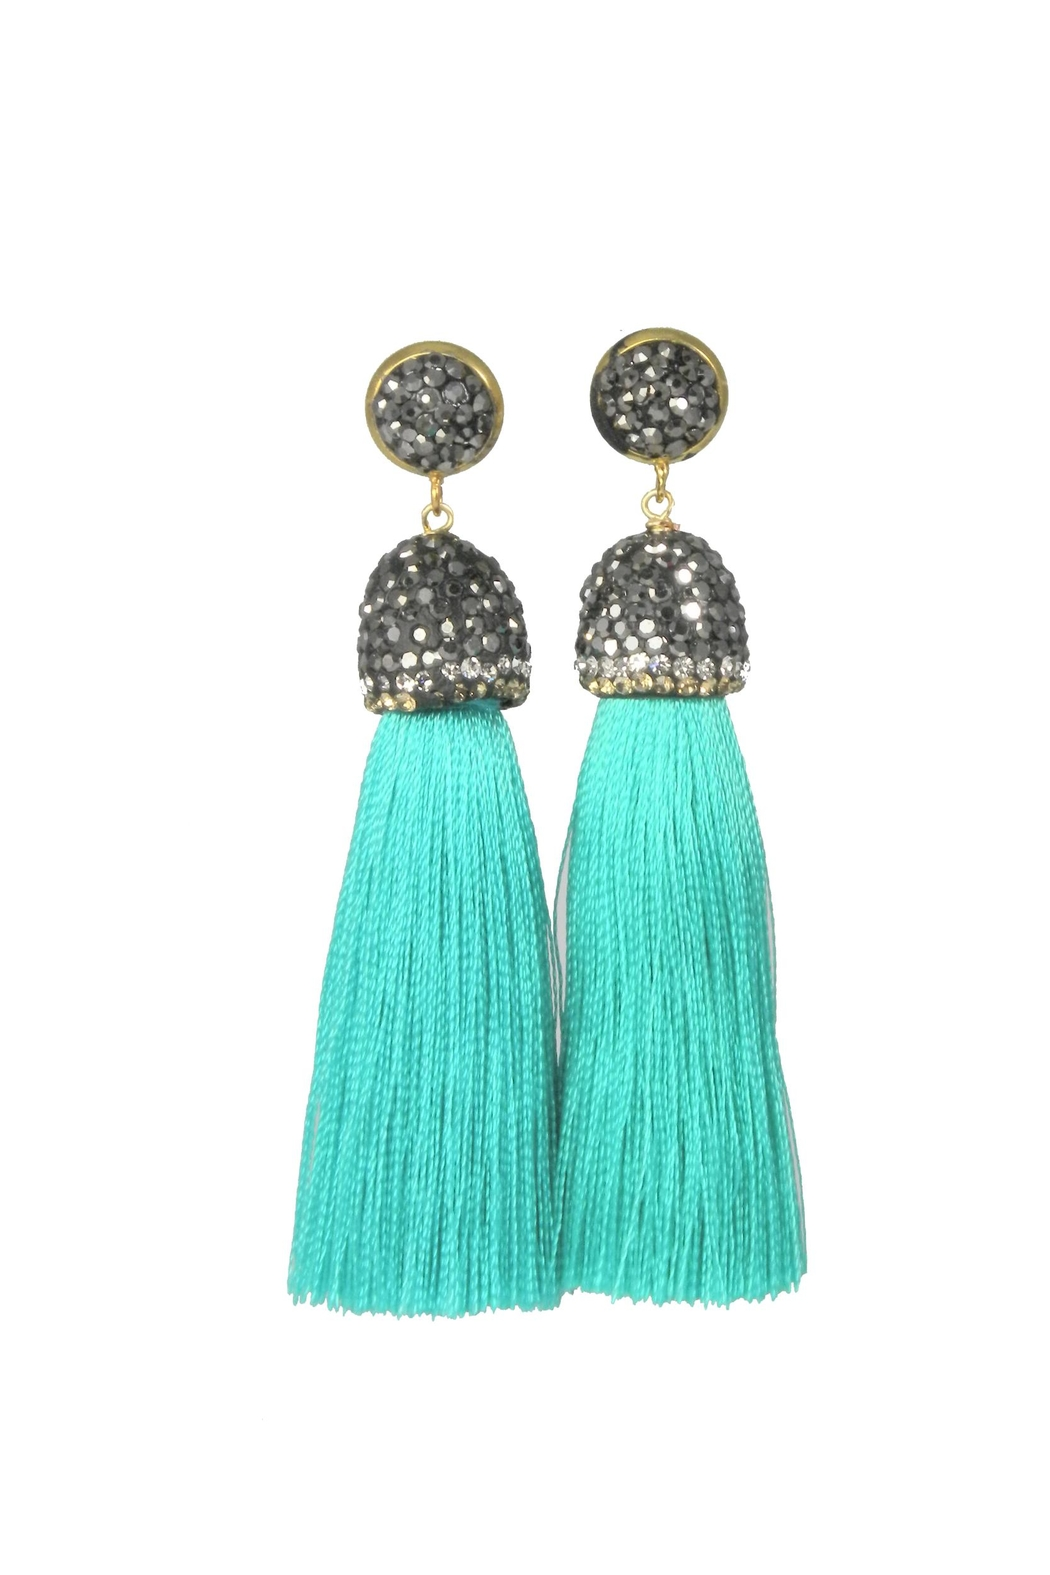 Baggis Accesorios Turquoise Cotton Tassel Earring - Main Image